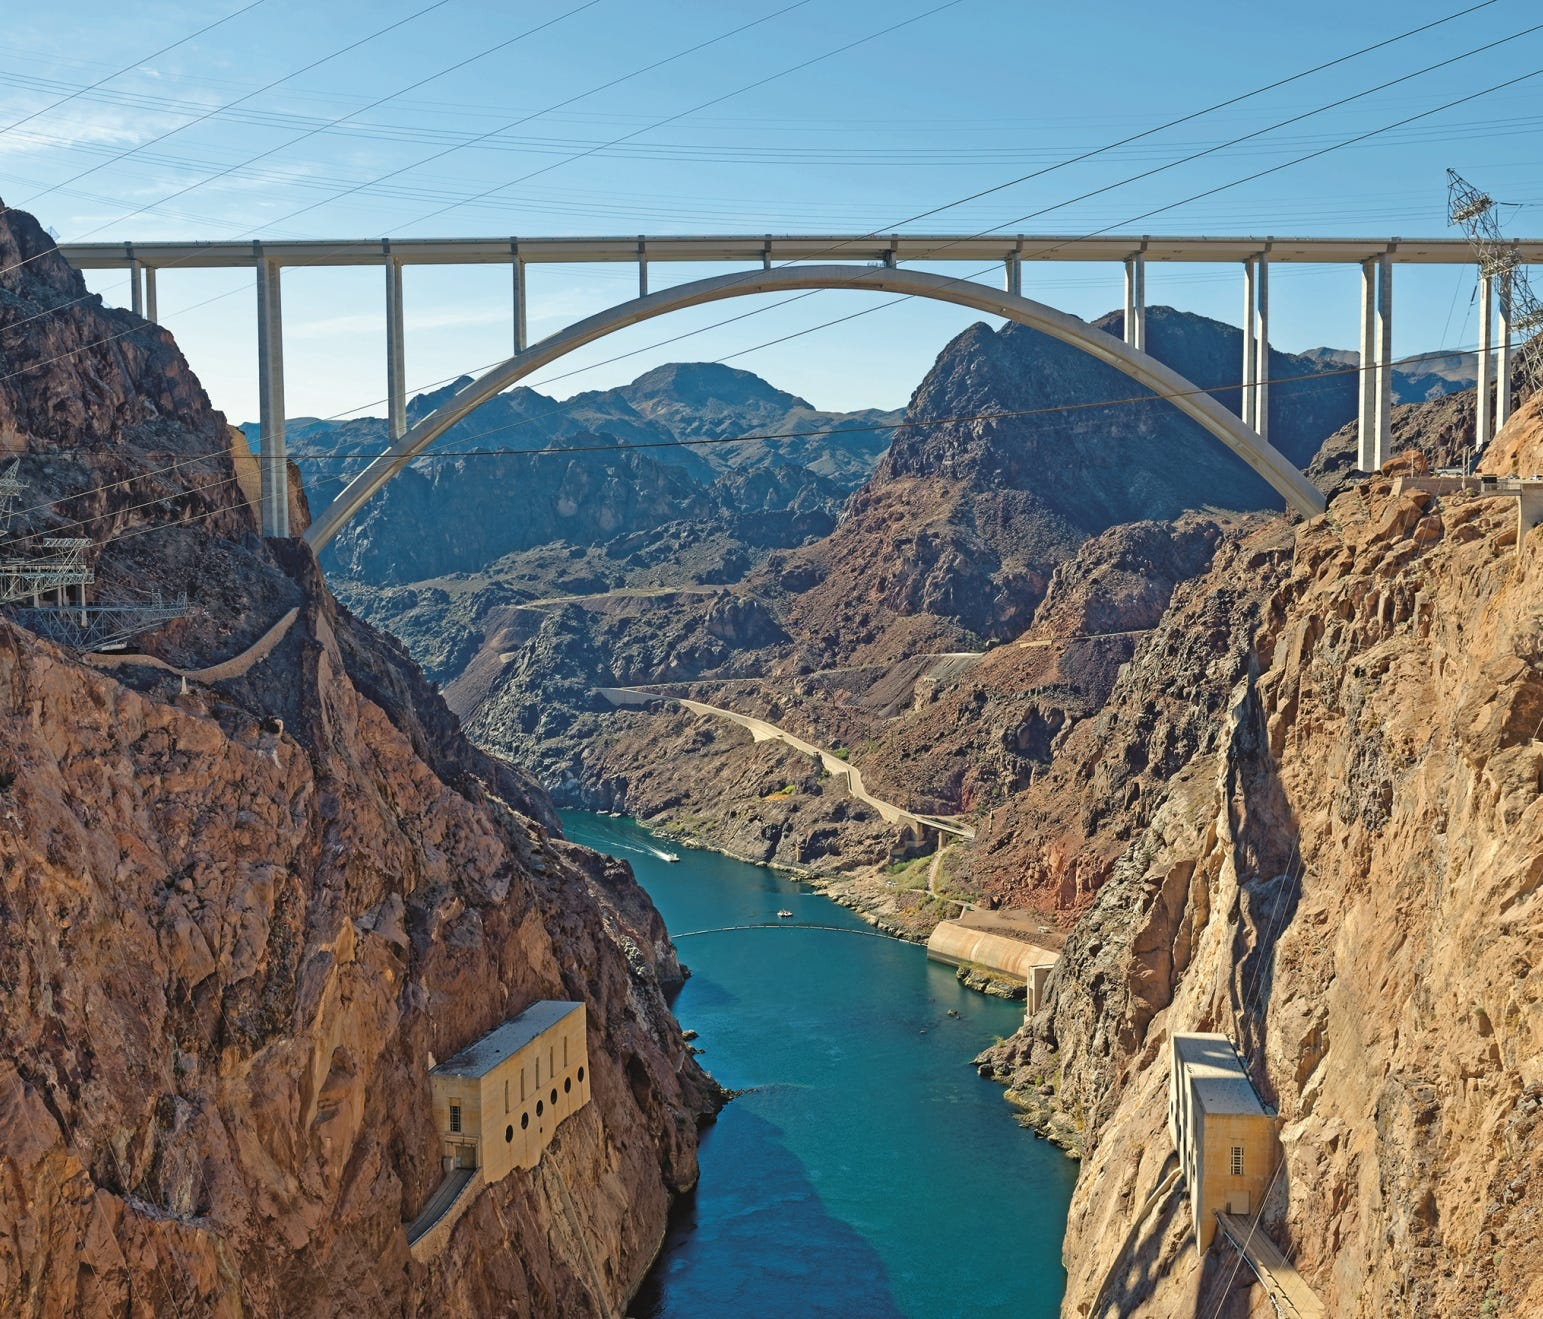 The Mike O'Callaghan–Pat Tillman Memorial Bridge crosses the Colorado River. It opened in 2010, about 1,500 feet downstream from the Hoover Dam.